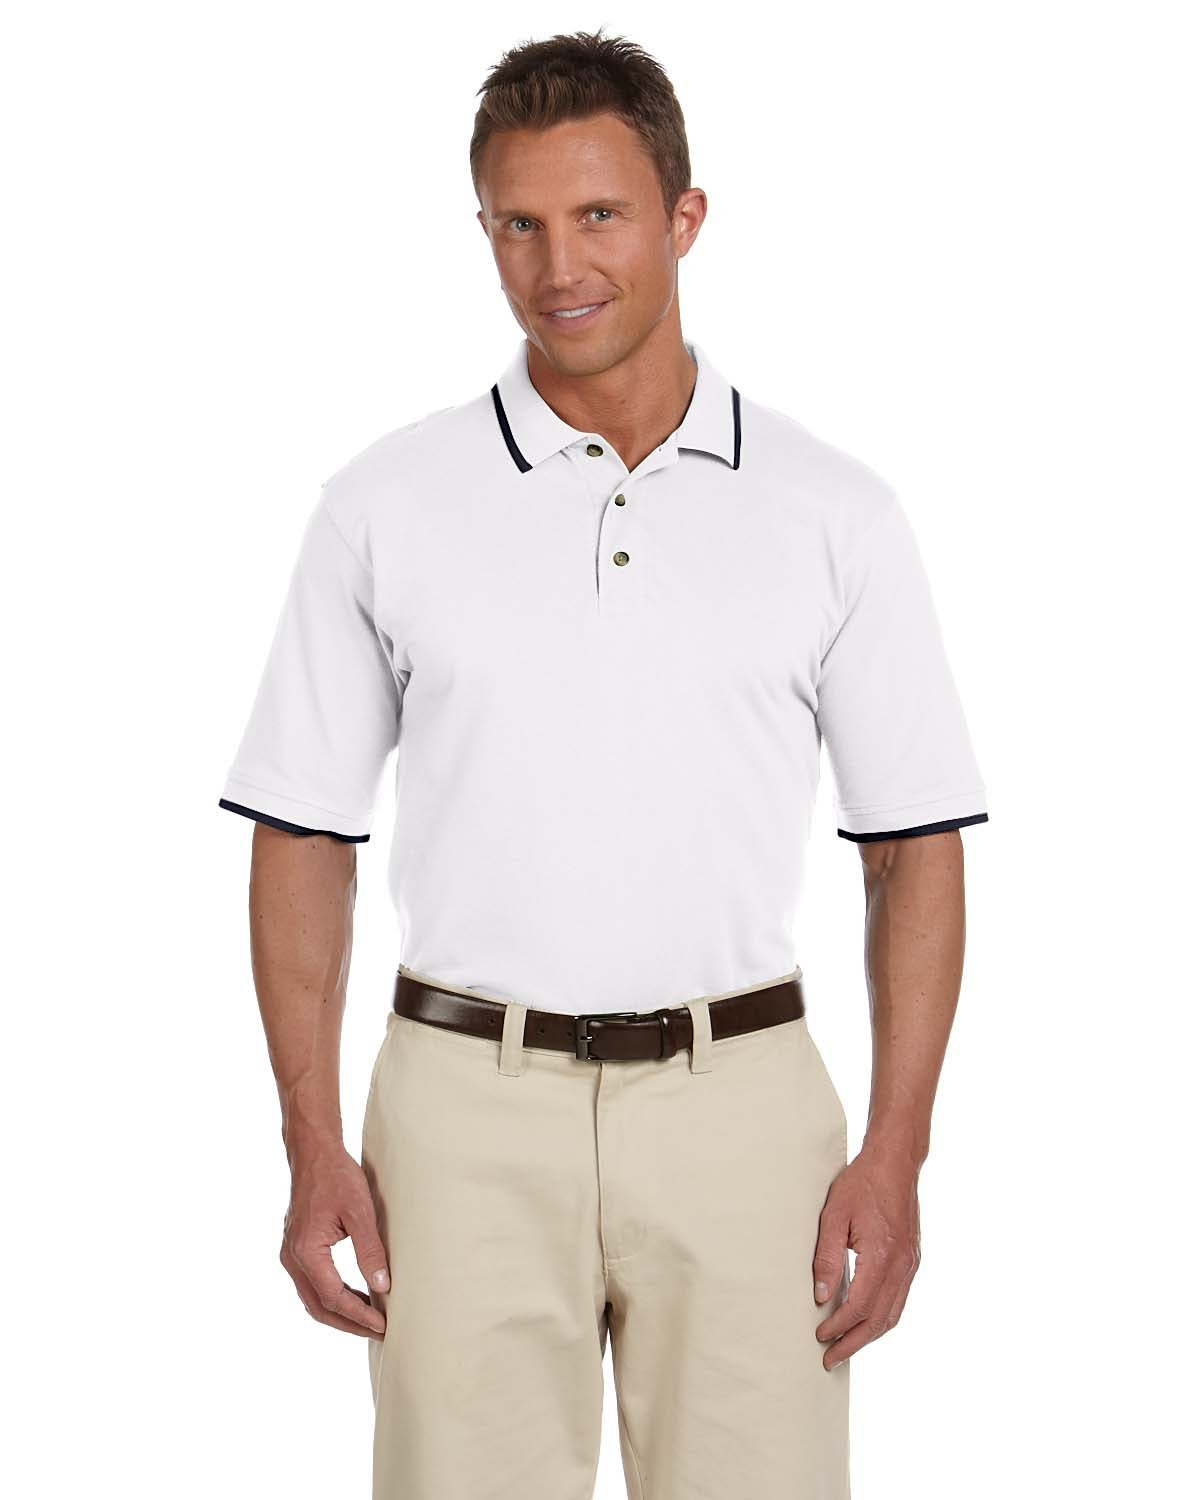 Harriton Adult 6 oz. Short-Sleeve Piqué Polo with Tipping WHITE/ NAVY